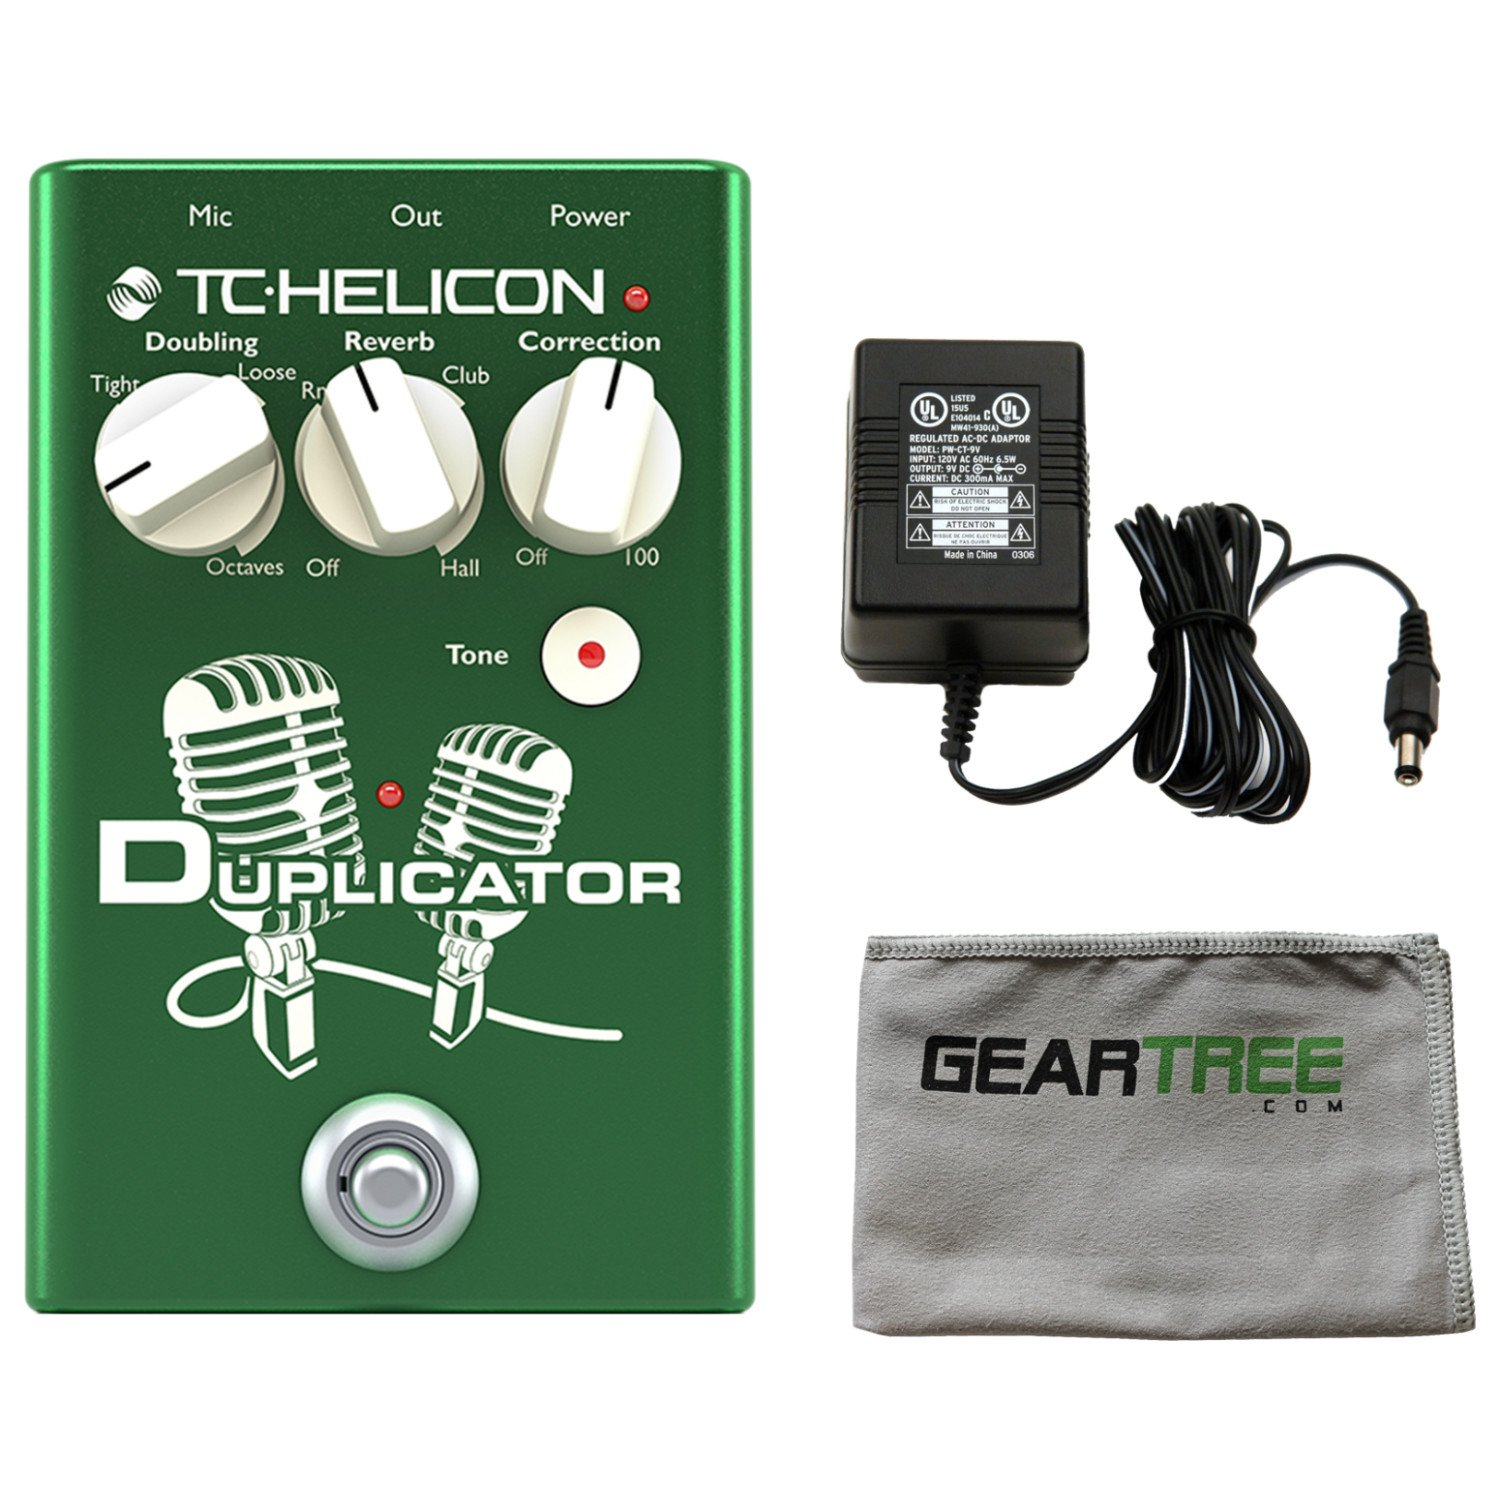 TC Helicon 996372001 DUPLICATOR Vocal Effects Pedal w/ Polish Cloth and Power Supply 4334435178